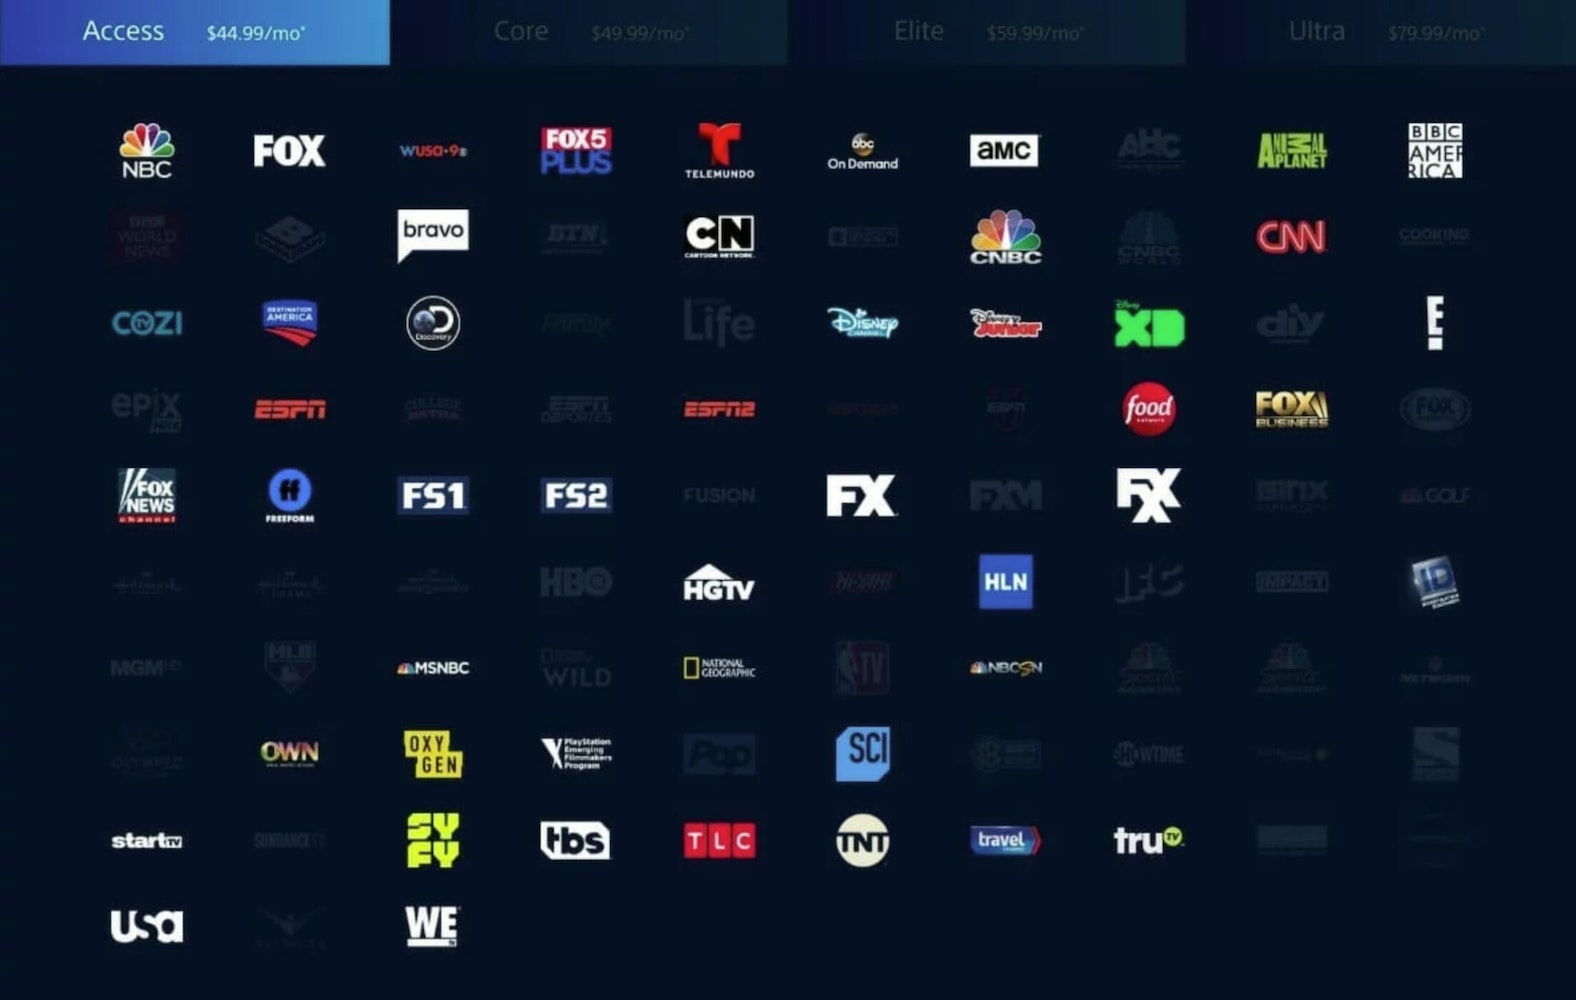 steelers dolphins playstation vue streaming nfl afc